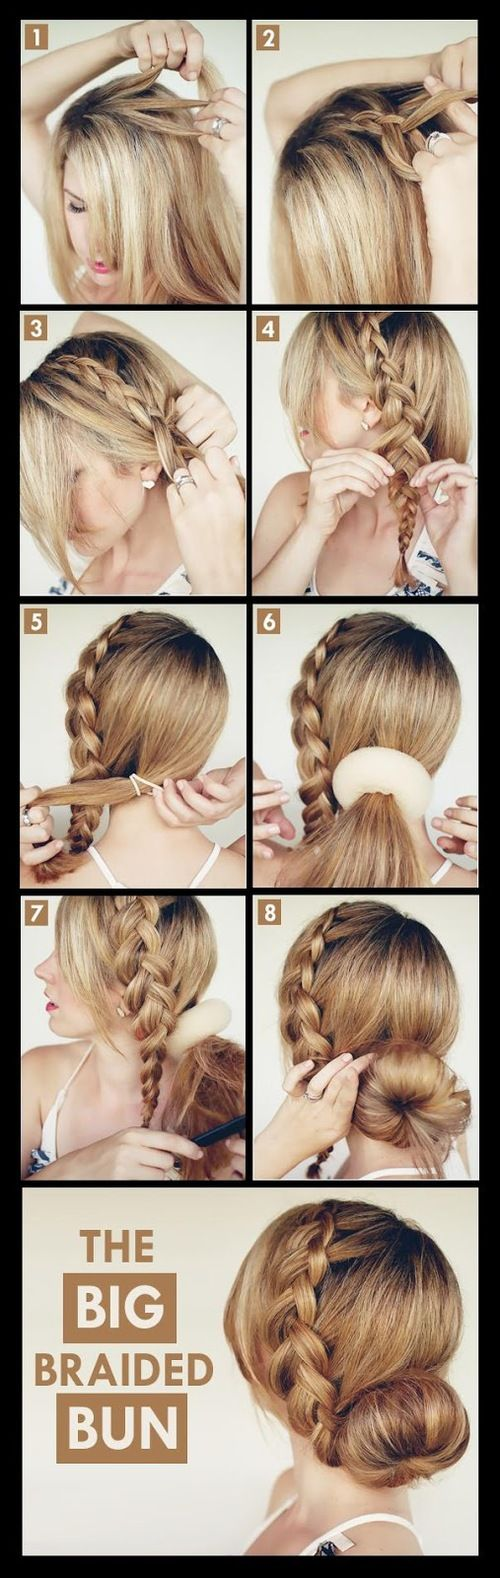 hairstyles tutorial: Make A Big Braided Bun For Your Self